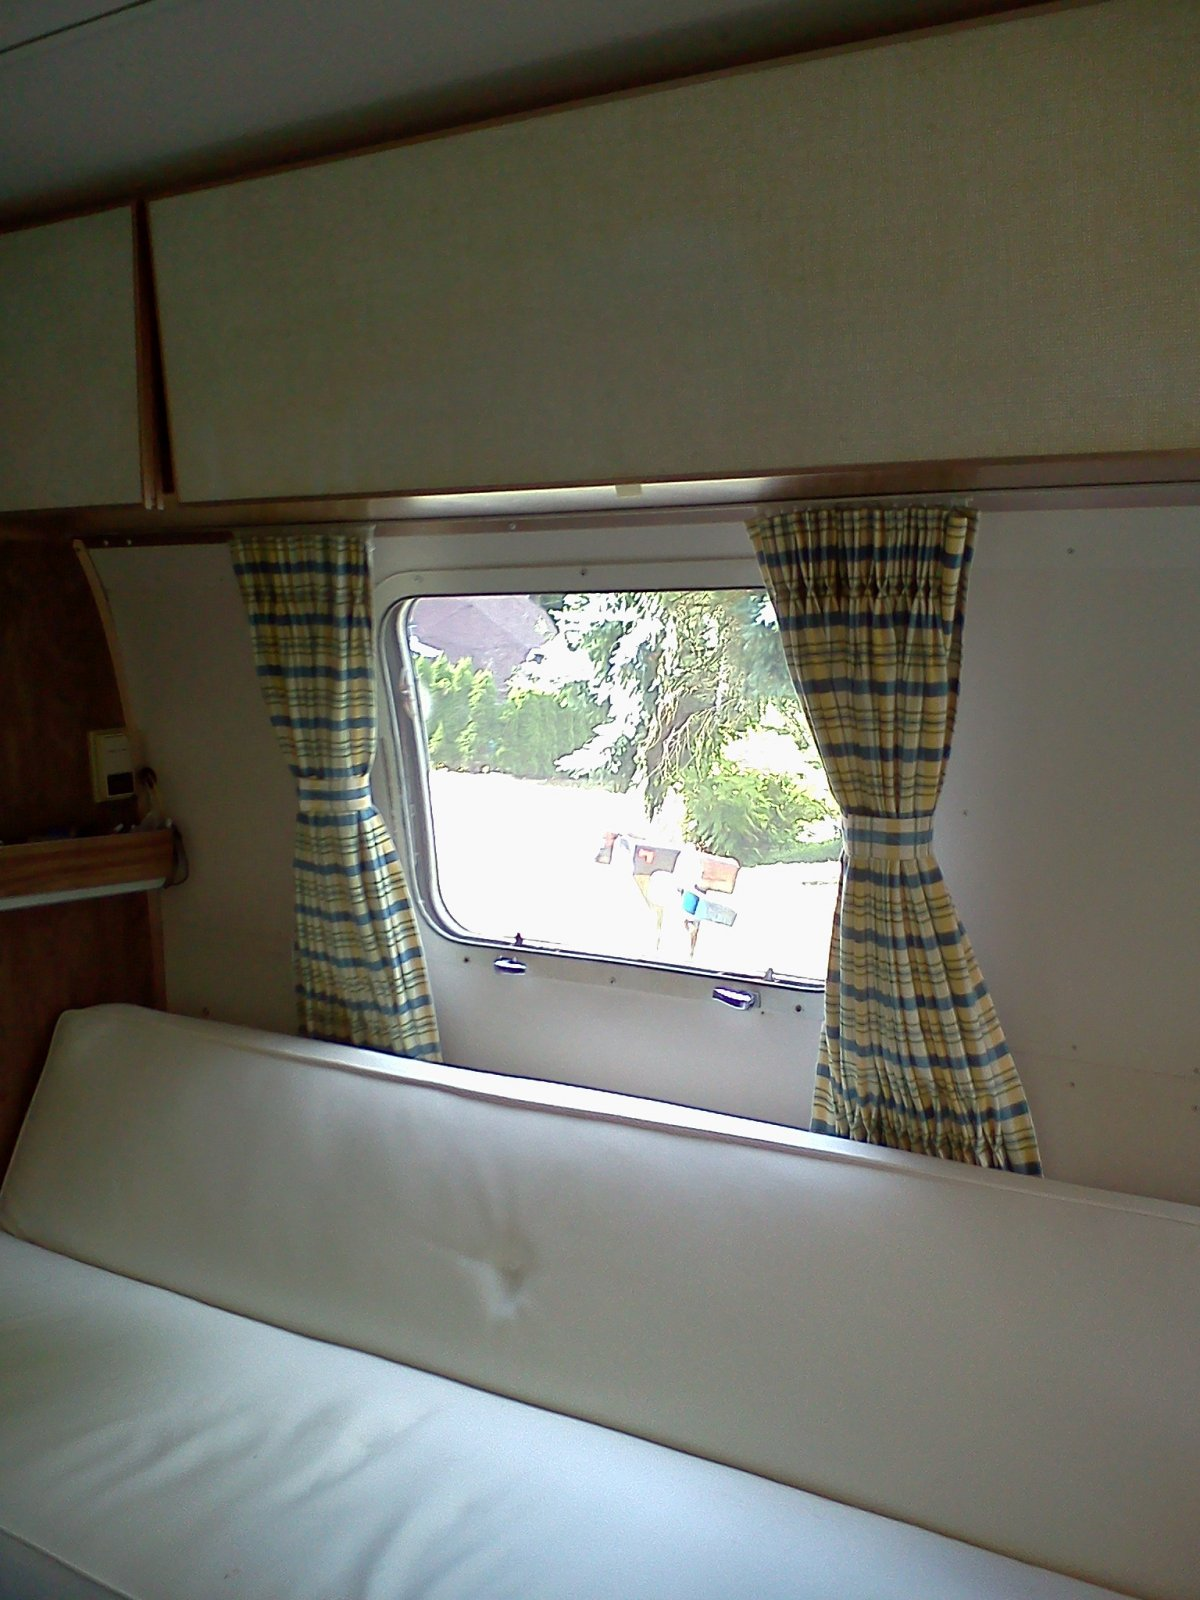 Click image for larger version  Name:Side Curtains Tied Back 2.jpg Views:132 Size:241.5 KB ID:137534